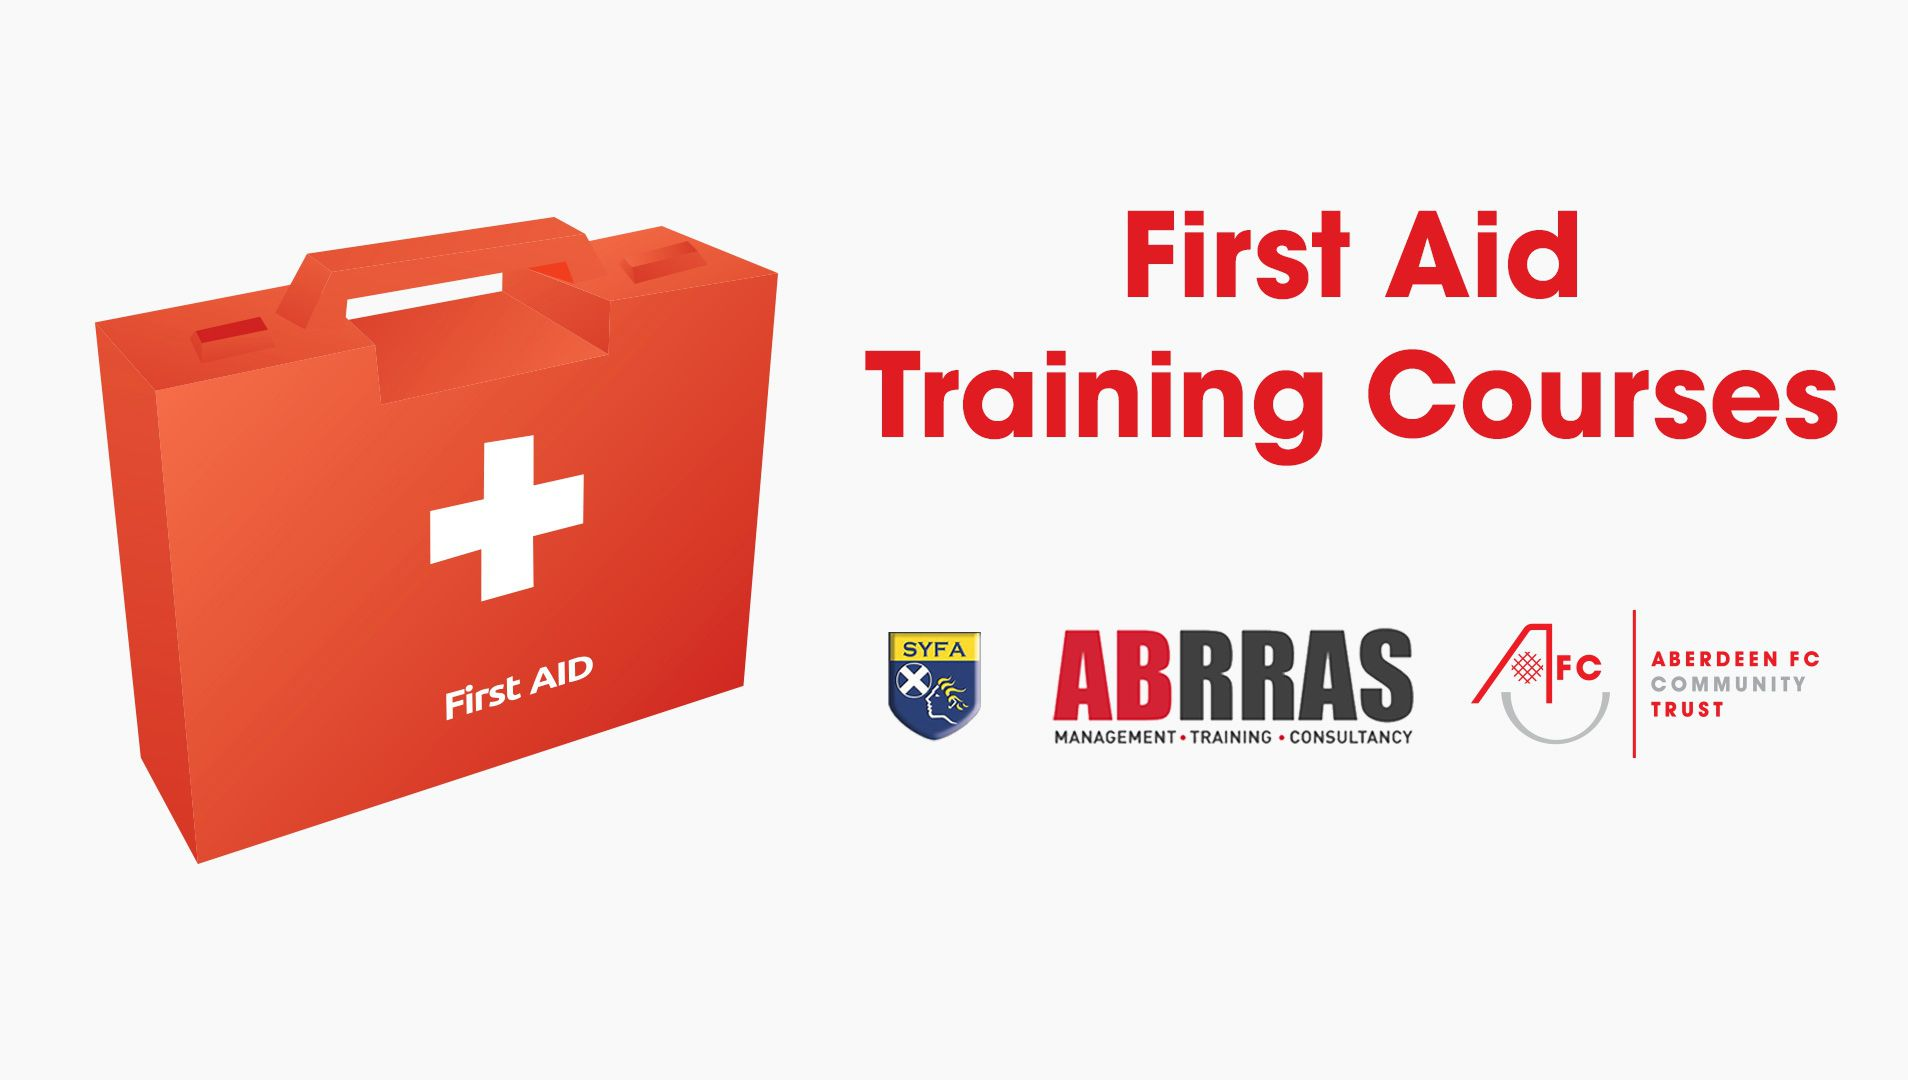 First Aid Training with ABRRAS and AFCCT